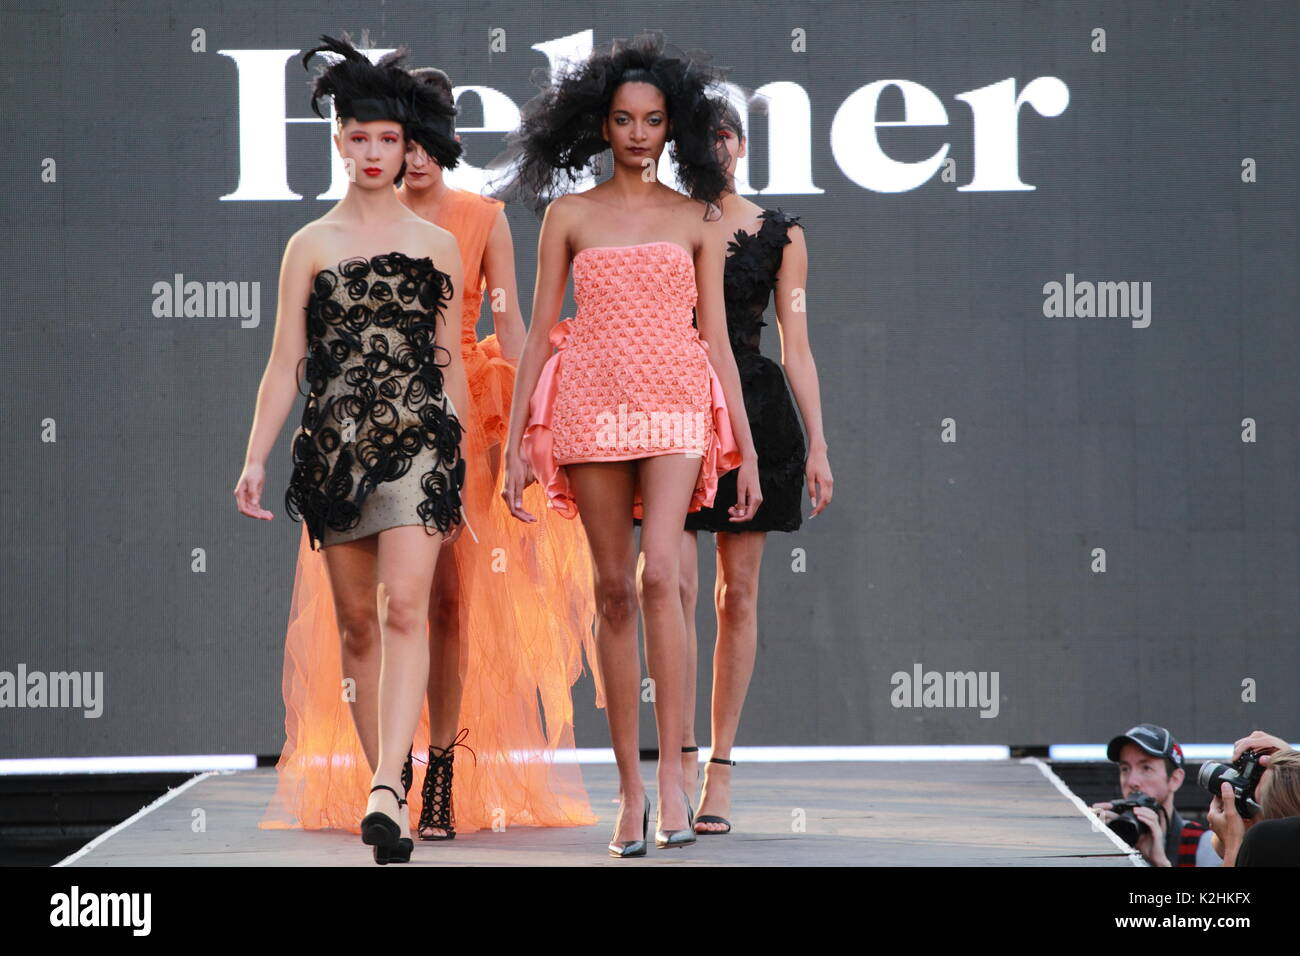 Montreal,Canada 25/08/2017.  four models walk on the runway at the Helmer fashion show held during the Fashion and Design Festival. - Stock Image